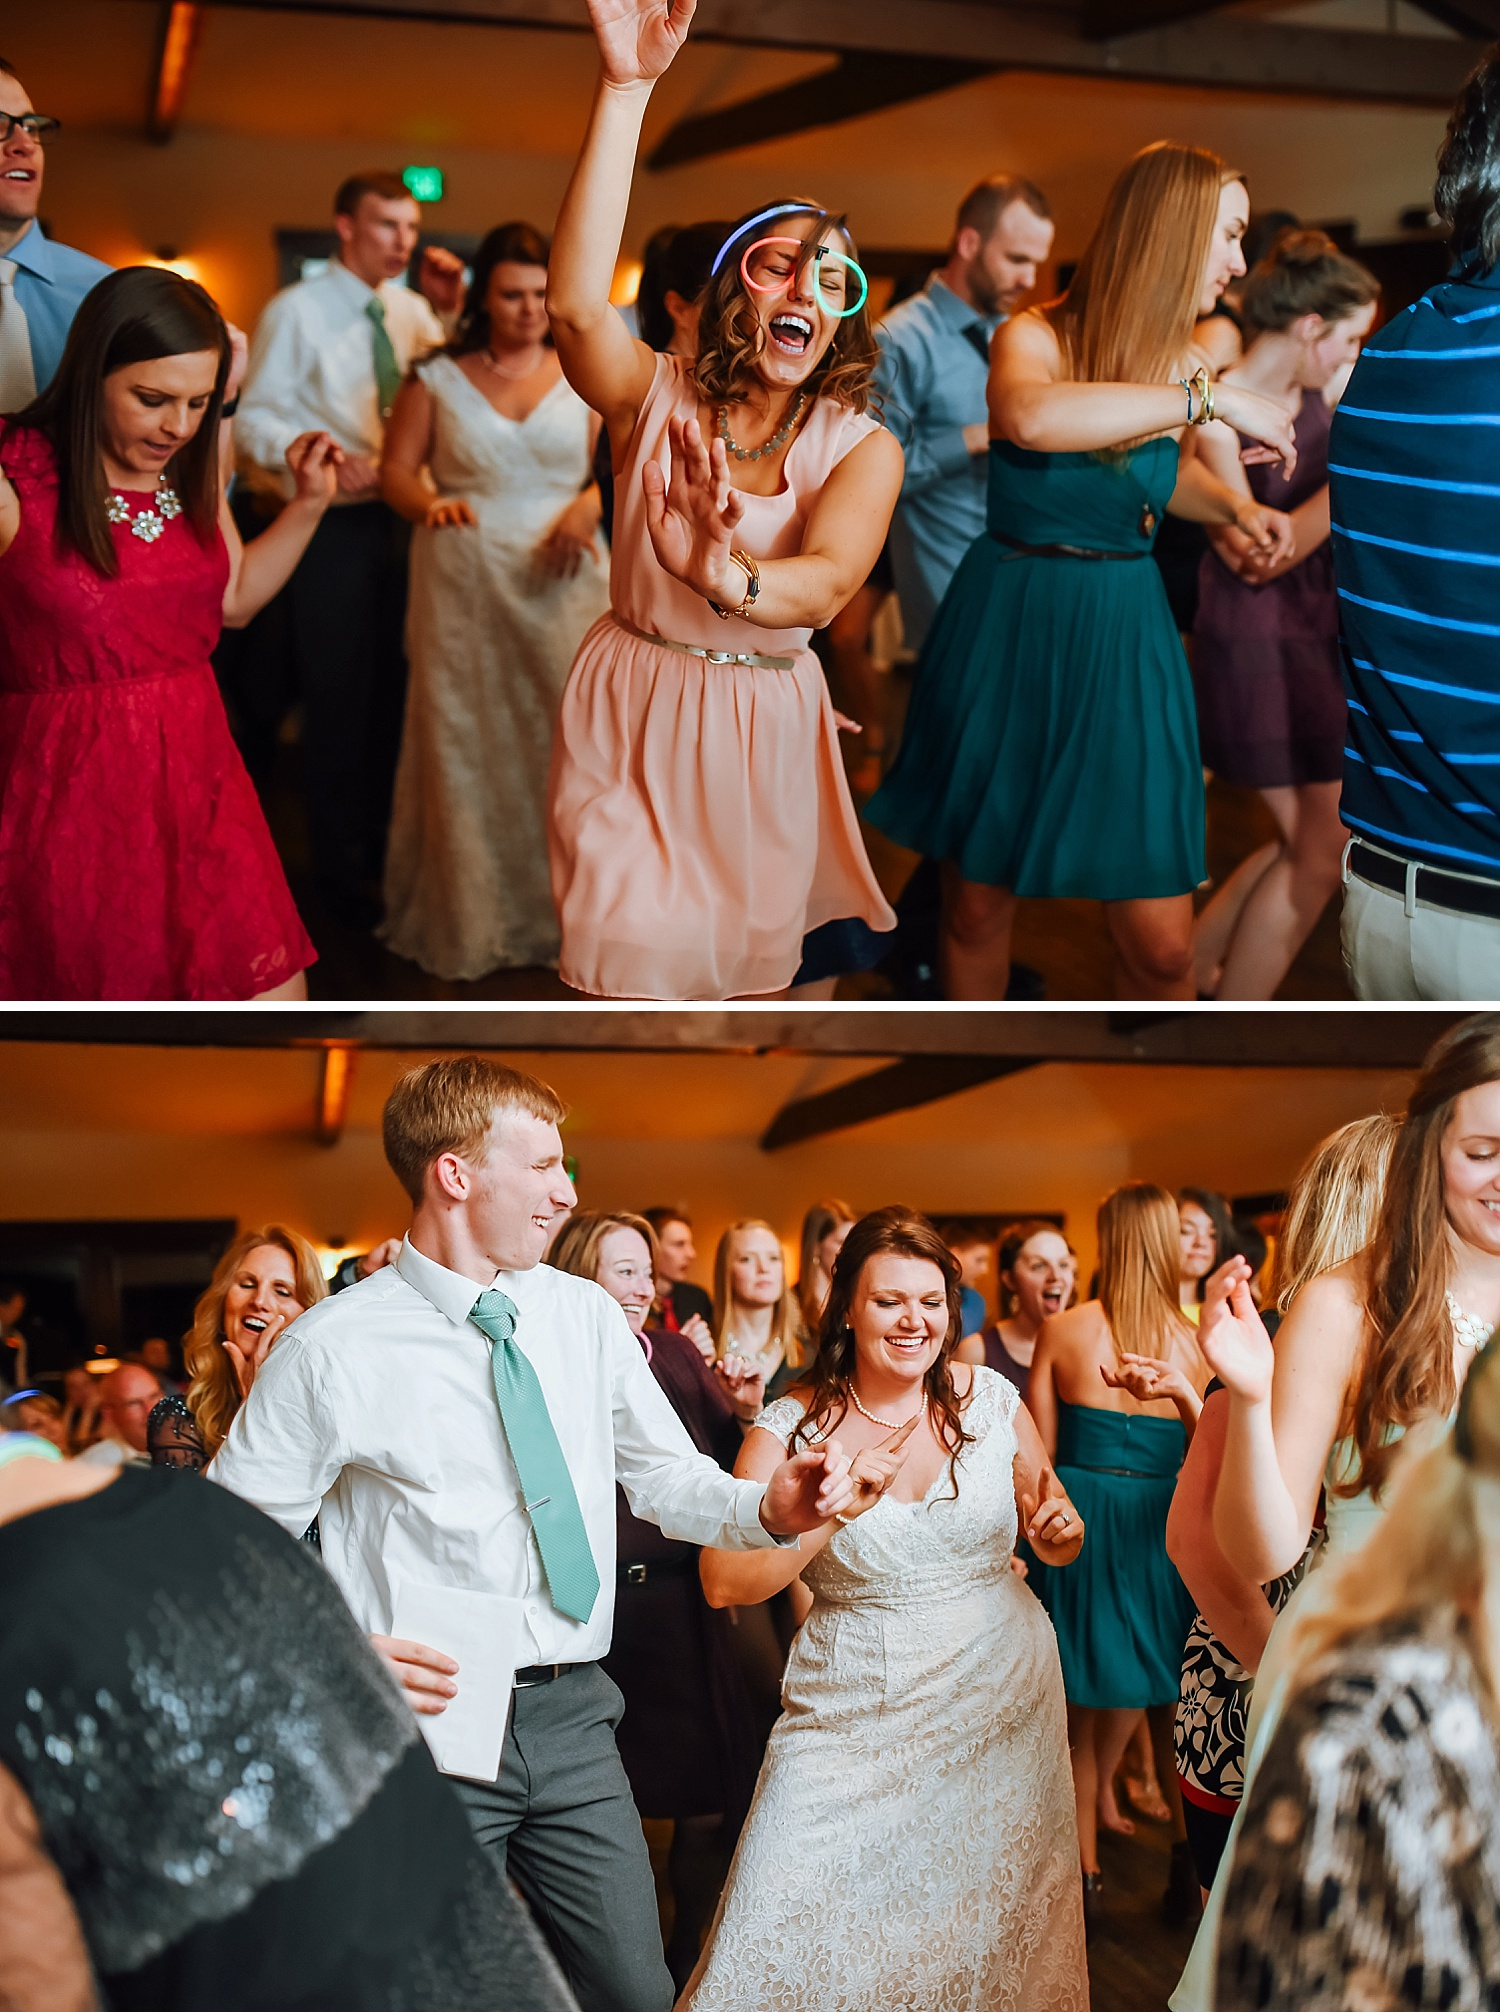 I love the wedding party dancing with glow stick glasses on. Mary's Lake Lodge is an awesome wedding reception venue! Love it!Photo by Maddie Mae Photography